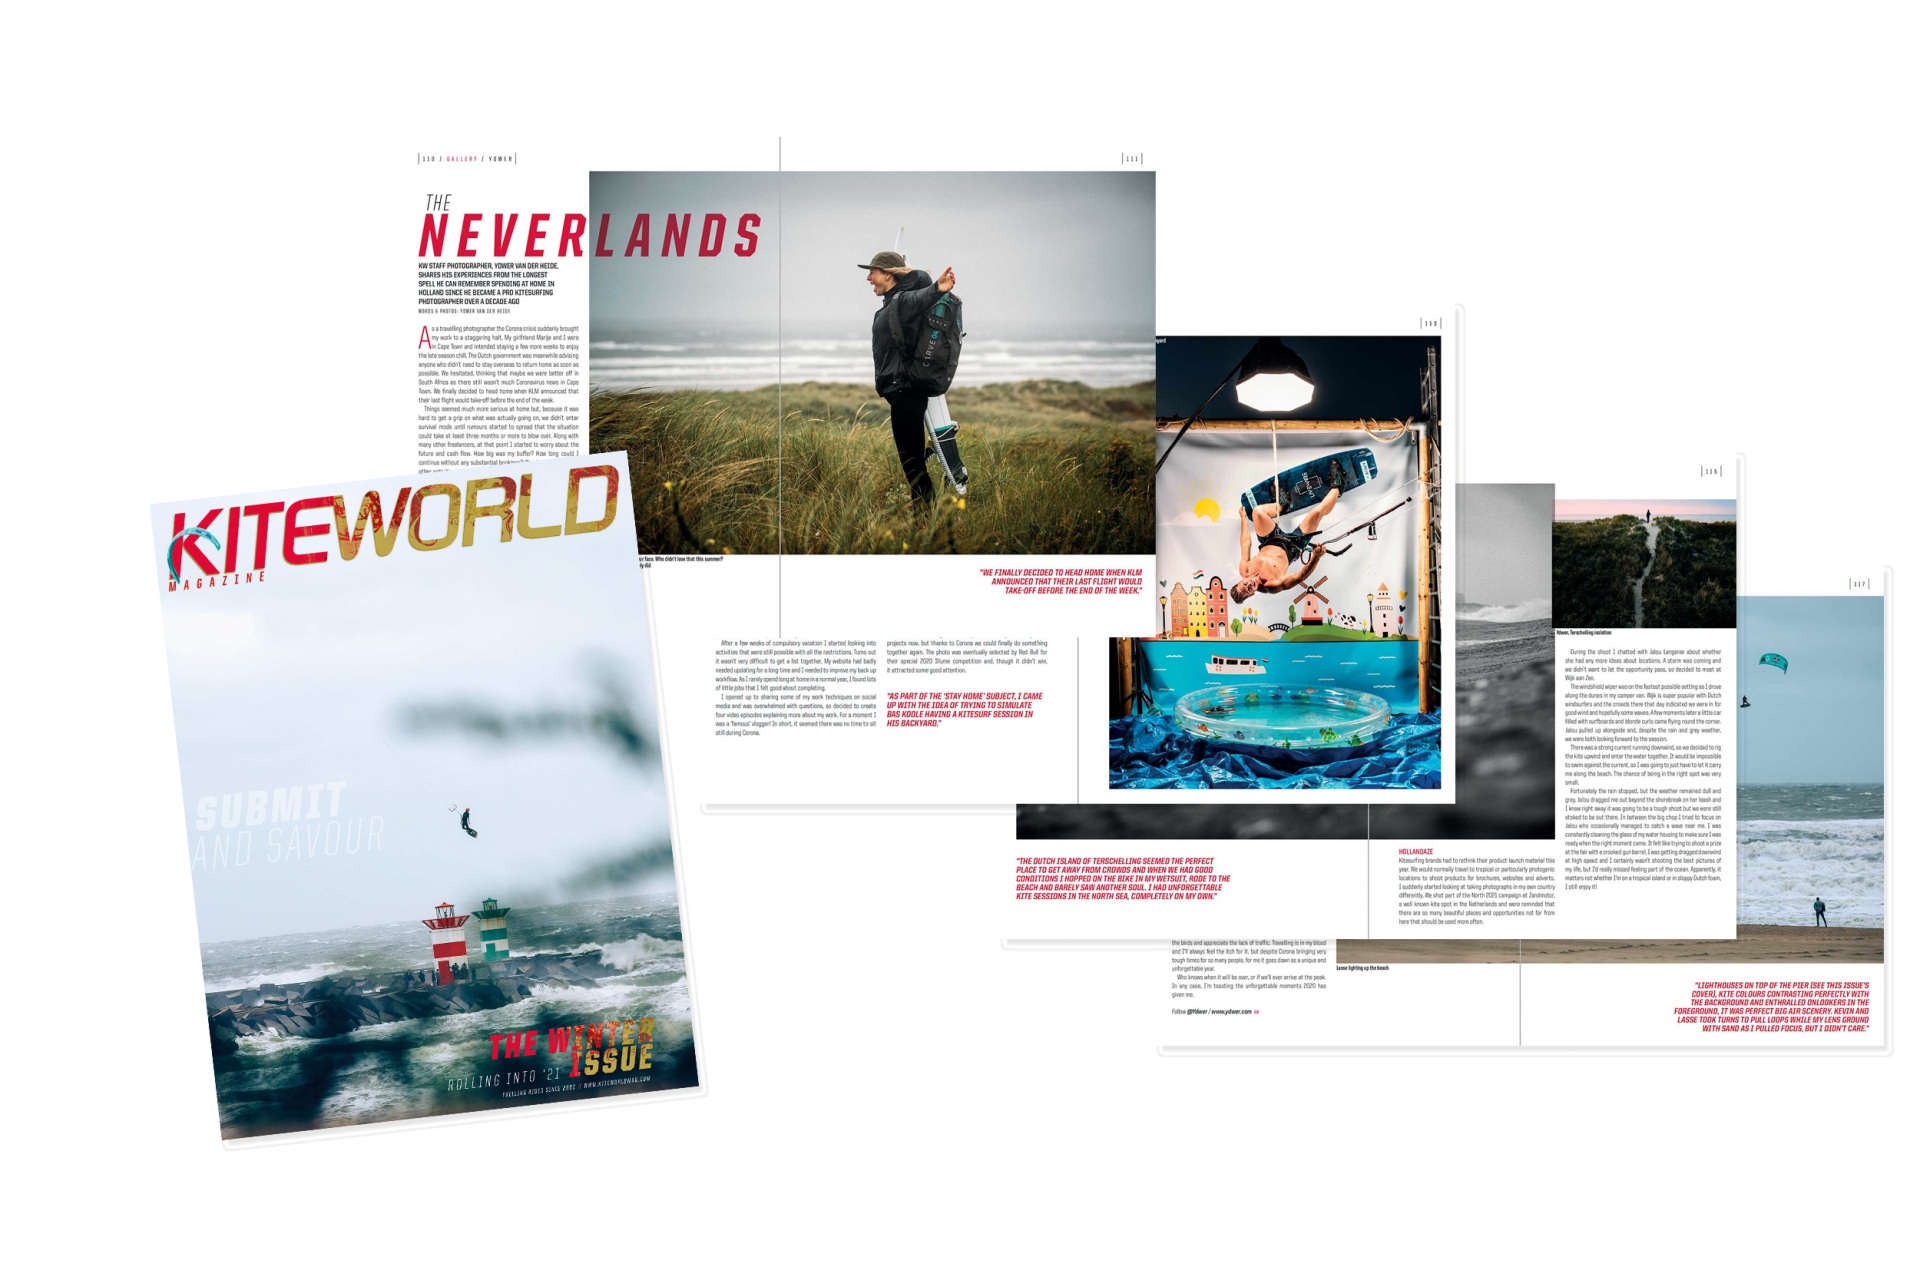 Ydwer van der Heide kitesurfing gallery in Kiteworld